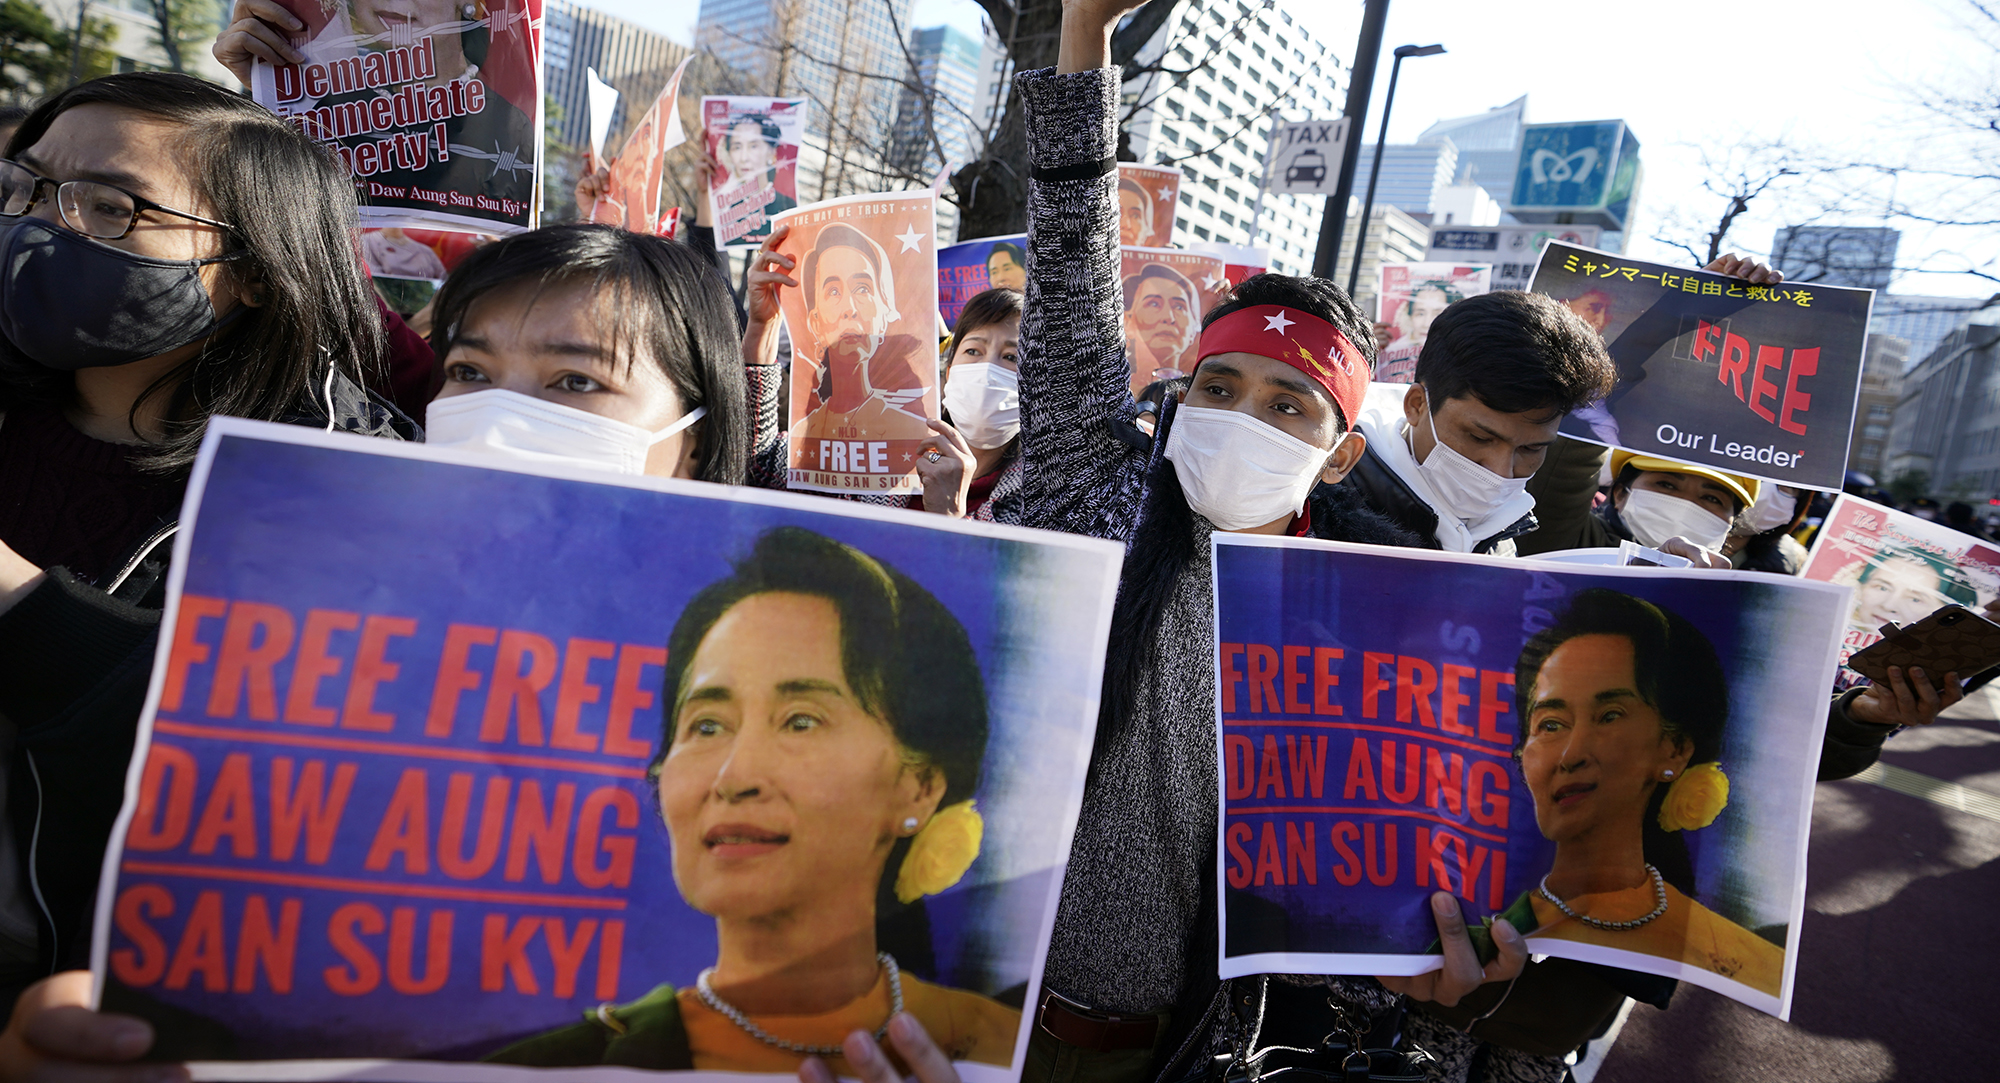 www.dailymaverick.co.za: The world may grumble, but soldiers hold sway in Myanma...